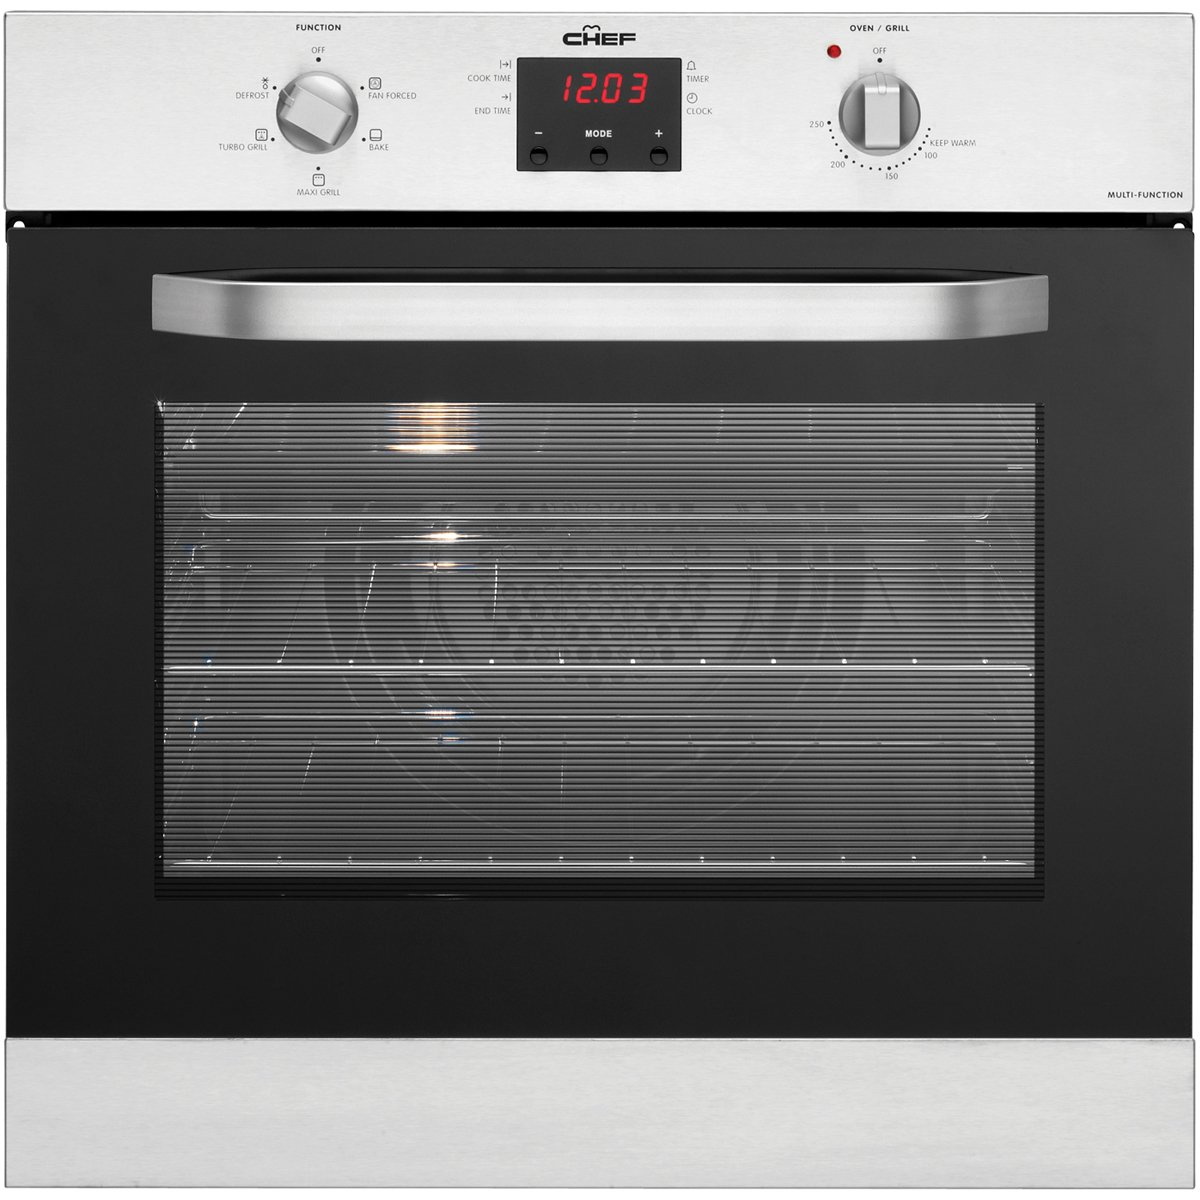 Chef Eoc647s 600mm 60cm Electric Wall Oven Appliances Online House Wiring To A This Product Is Not Available But The Good News We Have One Very Similar It